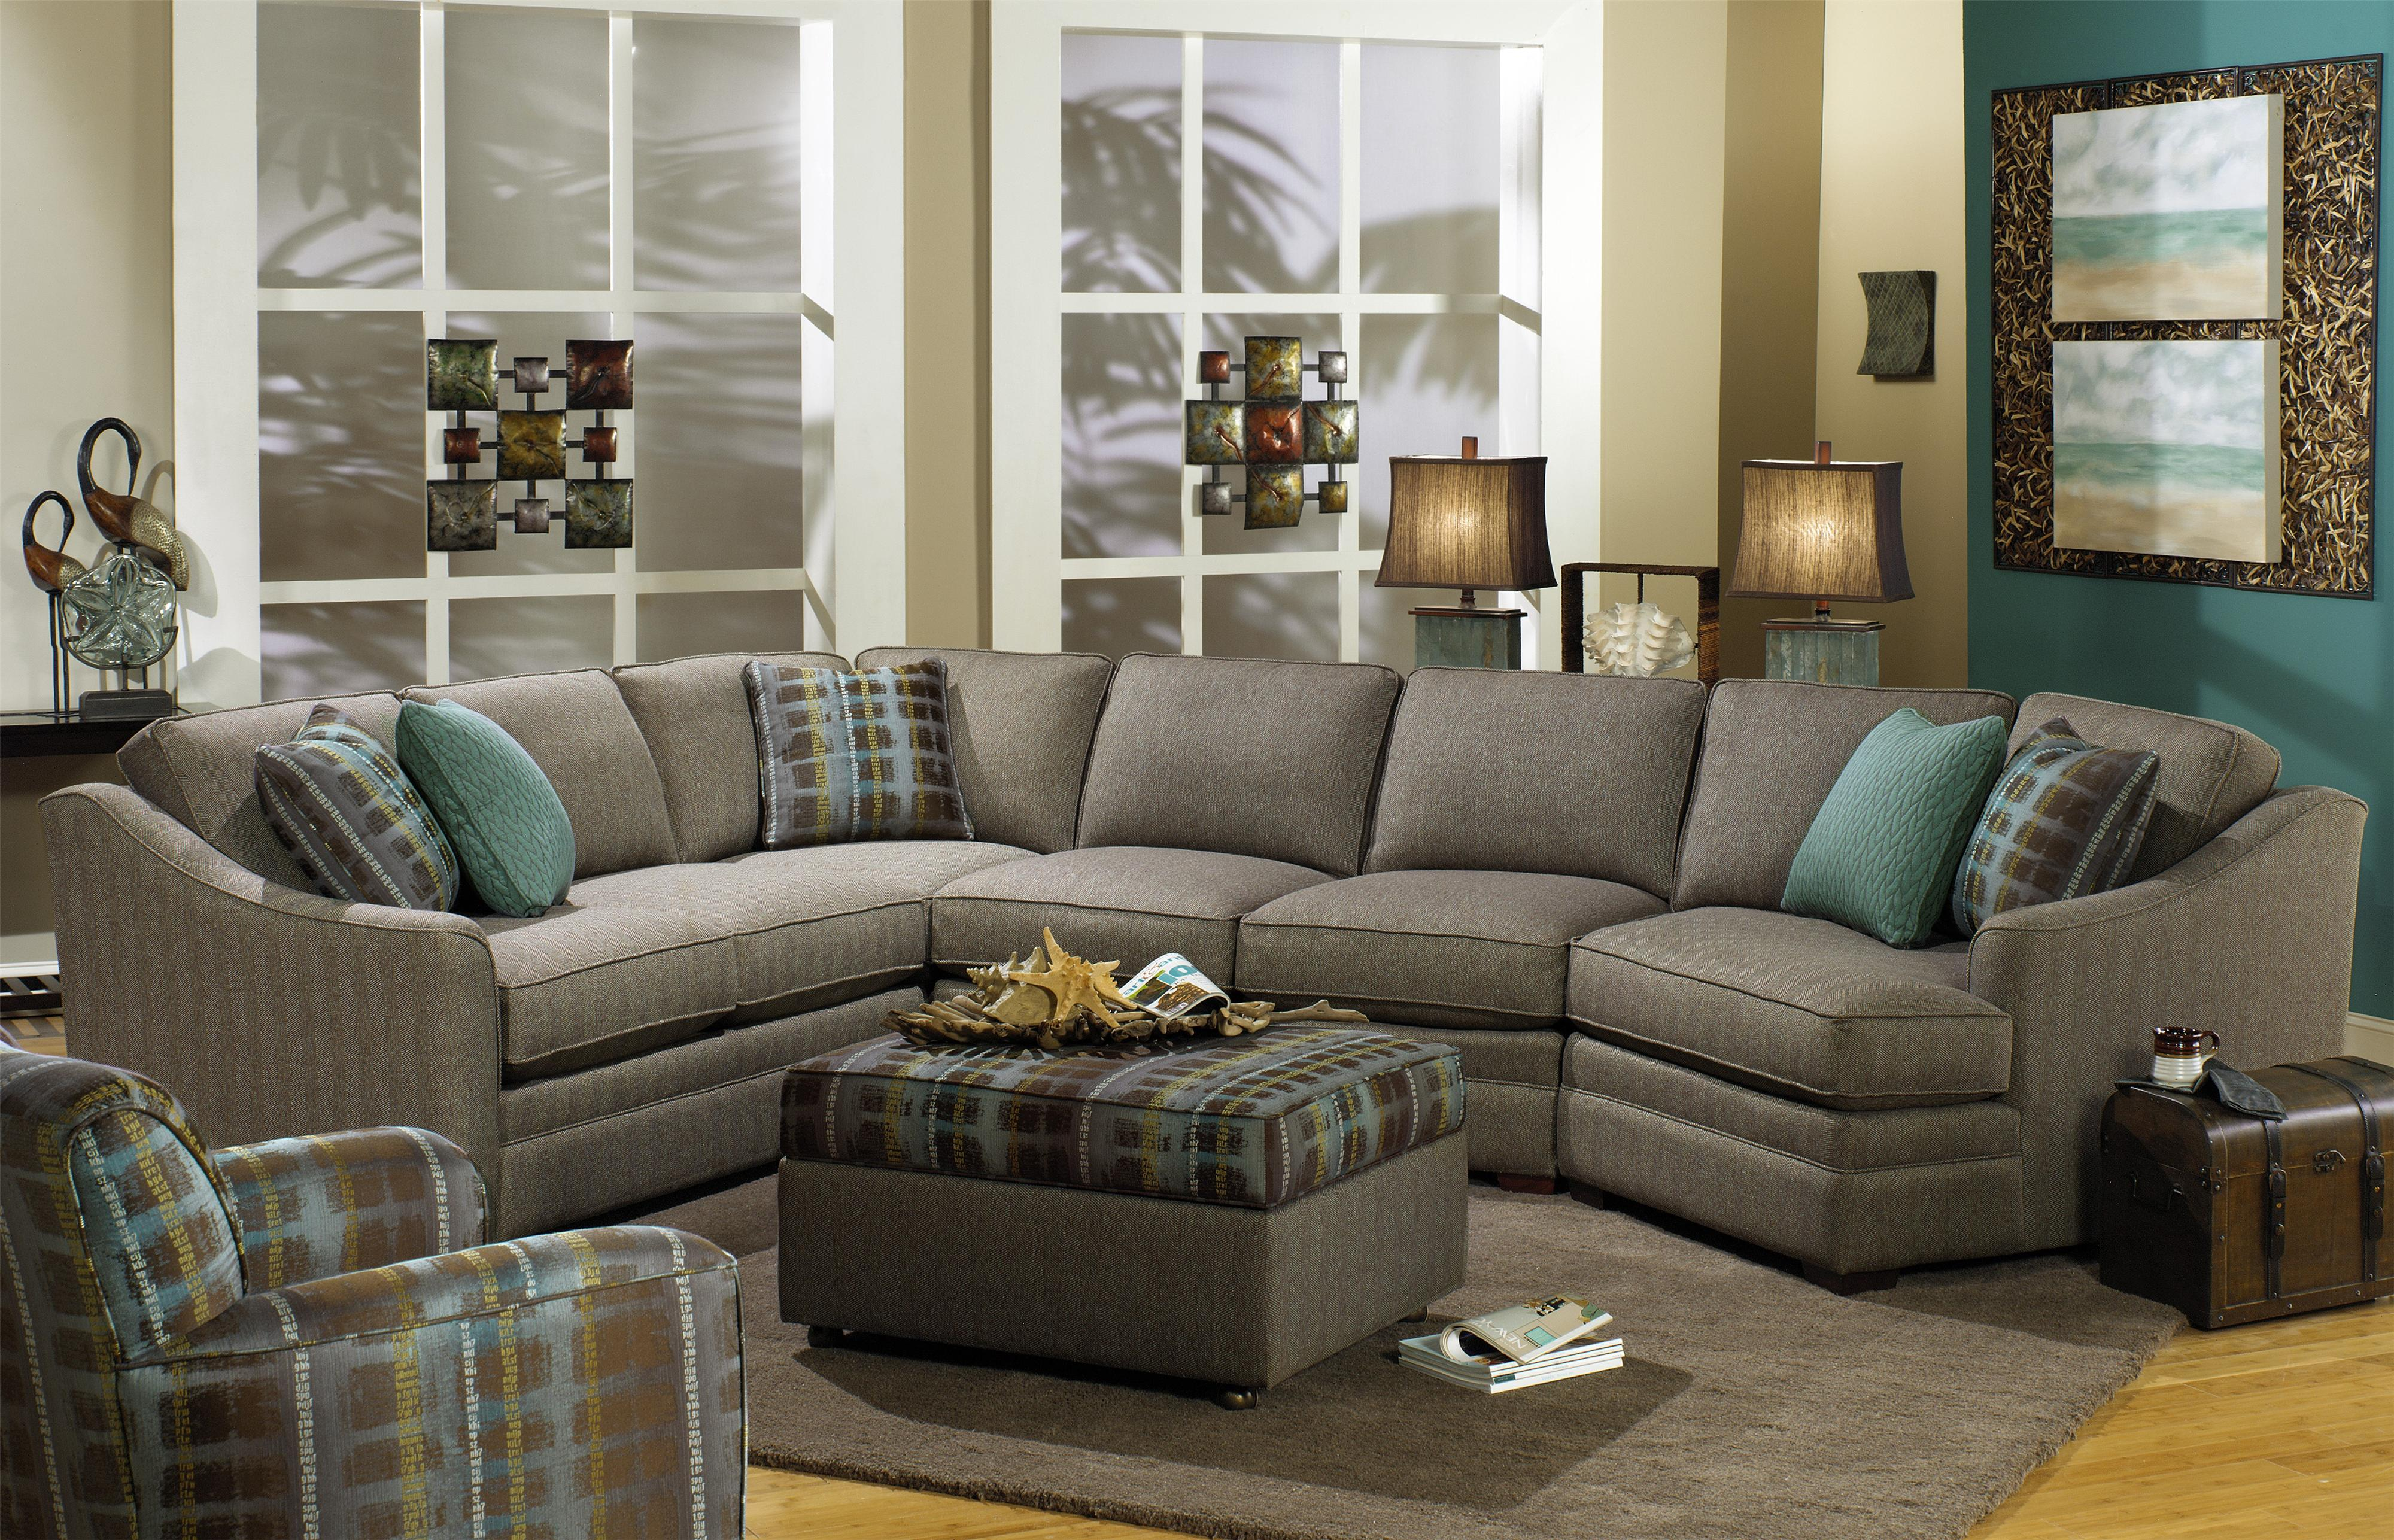 customize your sectional sofa two seater covers online india customizable 3 piece with raf cuddler by